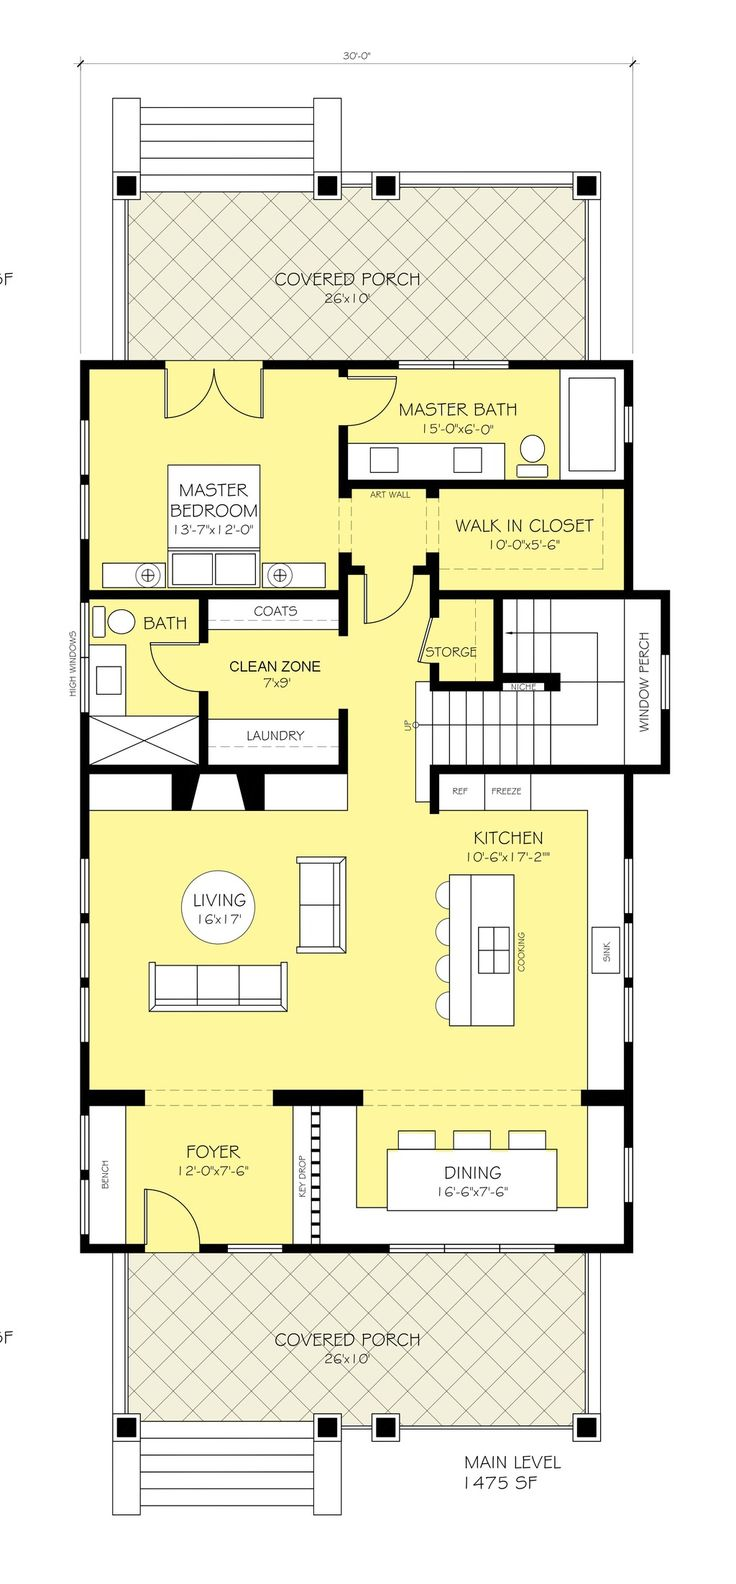 122 best floor plans images on pinterest architecture small this craftsman design floor plan is 2830 sq ft and has 3 bedrooms and has bathrooms